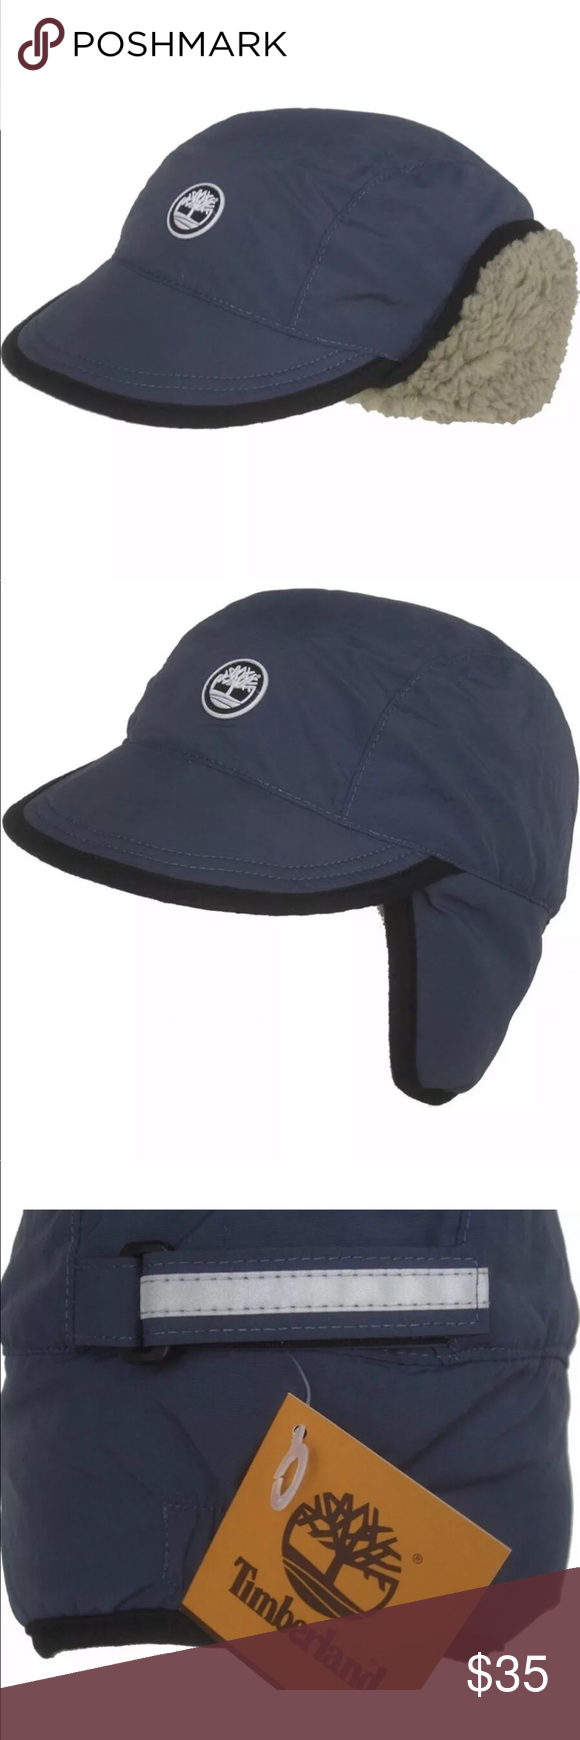 ad819cb4 TIMBERLAND Water Resistant Ear Flap Trapper Hat NEW TIMBERLAND Water  Resistant Ear Flap Hat Visor Trapper